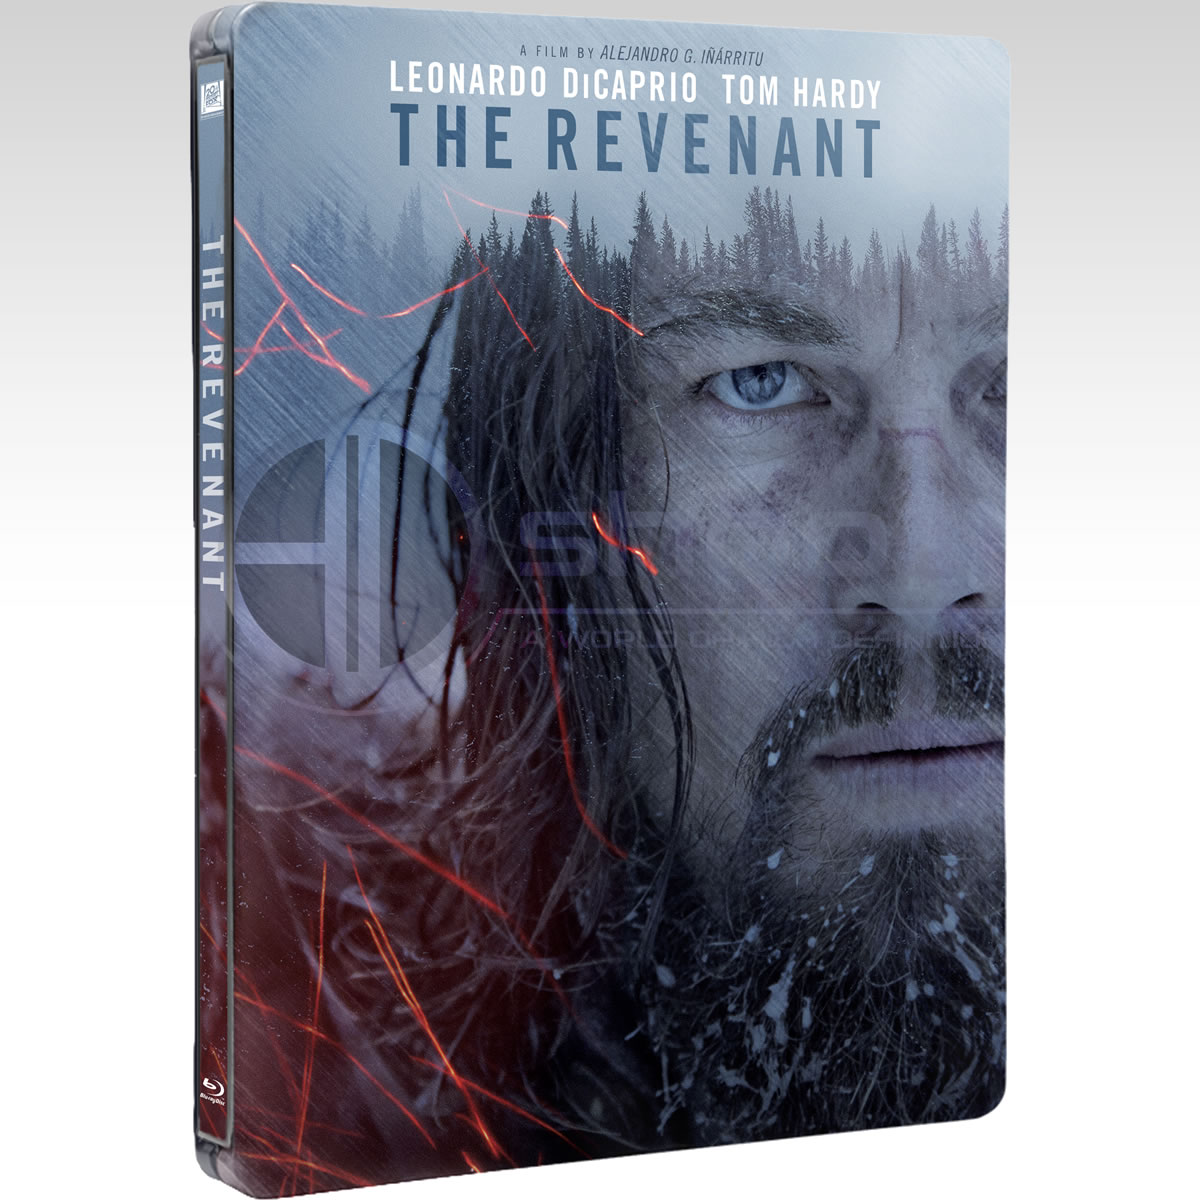 THE REVENANT - Η ΕΠΙΣΤΡΟΦΗ Limited Edition Steelbook (BLU-RAY)